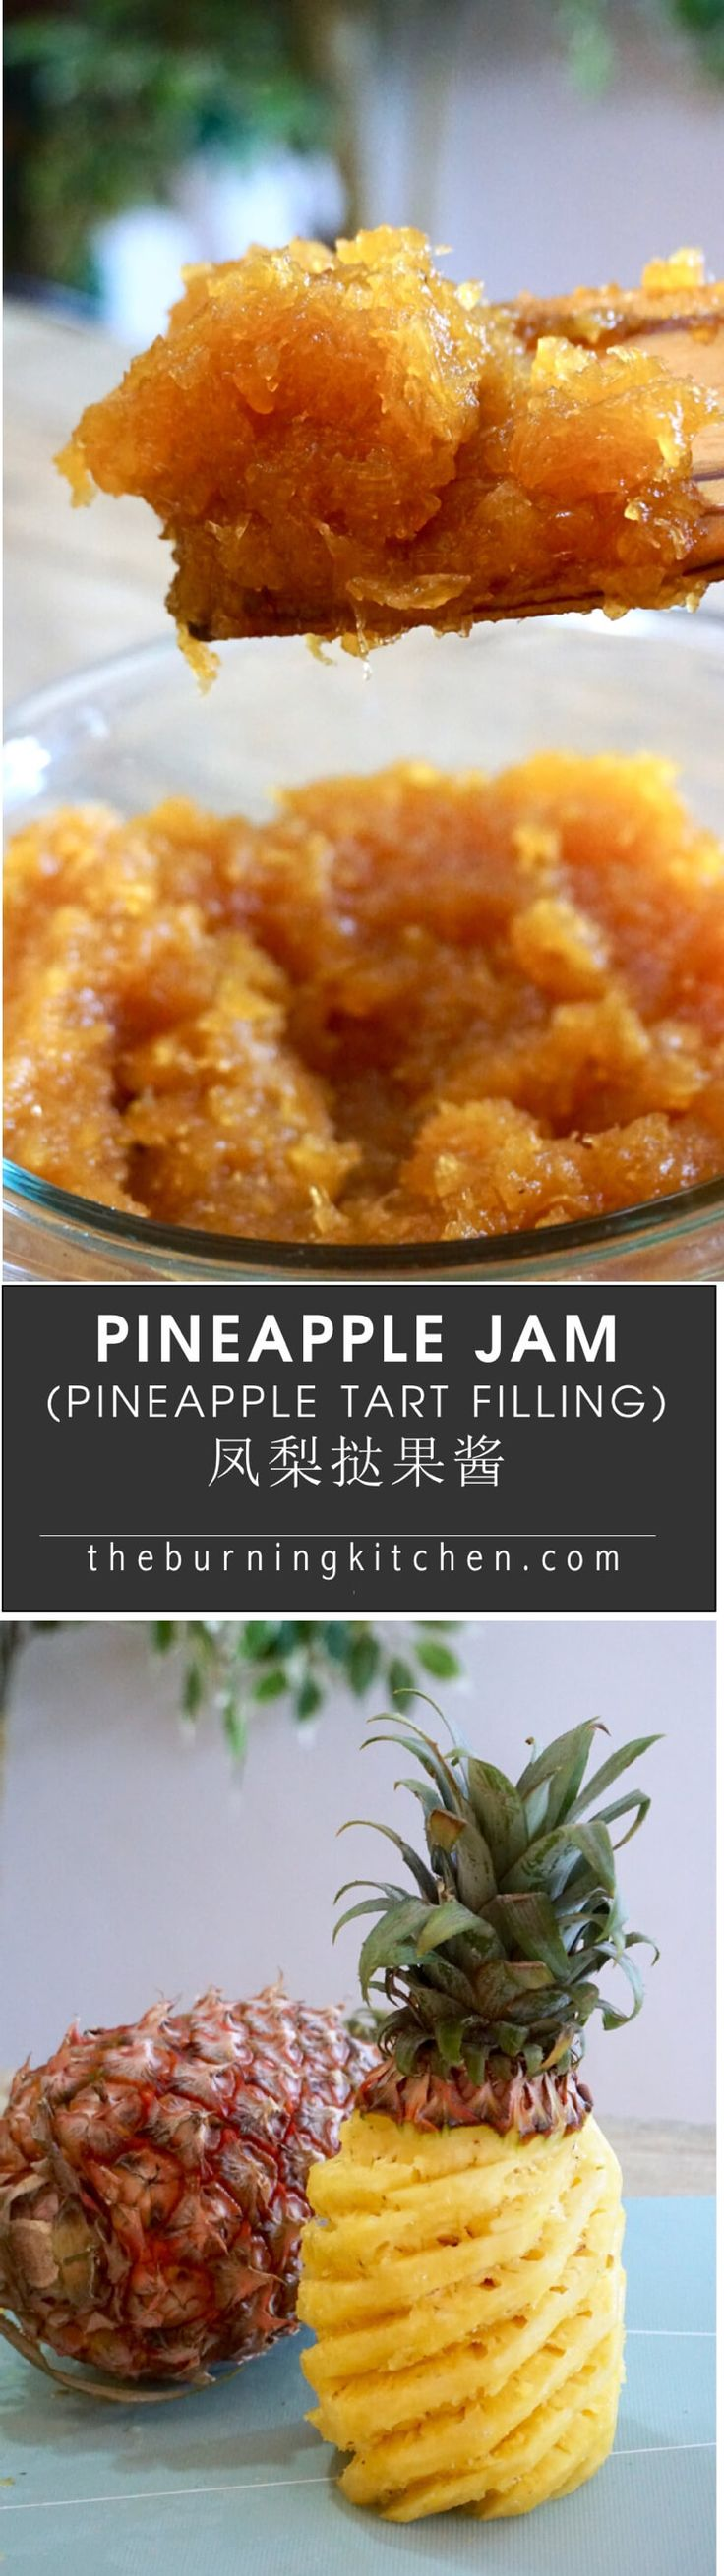 Spiced Pineapple Jam (Pineapple Tart Filling): Nothing beats homemade pineapple jam where you can take ultimate control to get your preferred texture, sweetness level and spice flavour. This recipe teaches you how to make your own pineapple jam from scratch using 5 ingredients: fresh ripened honey pineapples, sugar, cinnamon, cloves and star anise, and it is super duper delicious and very satisfying to make!